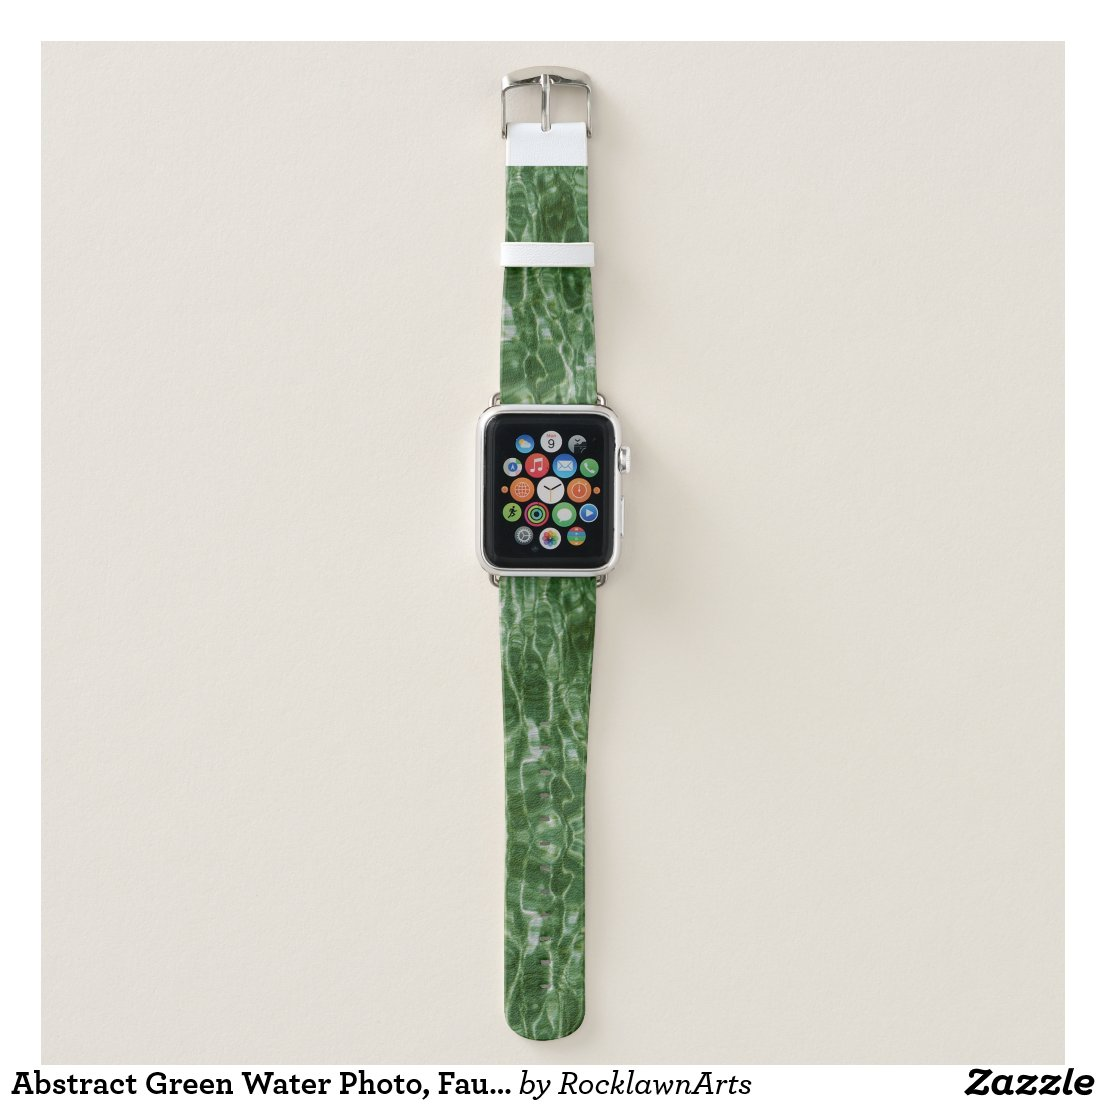 Abstract Green Water Photo, Faux Marble Apple Watch Band